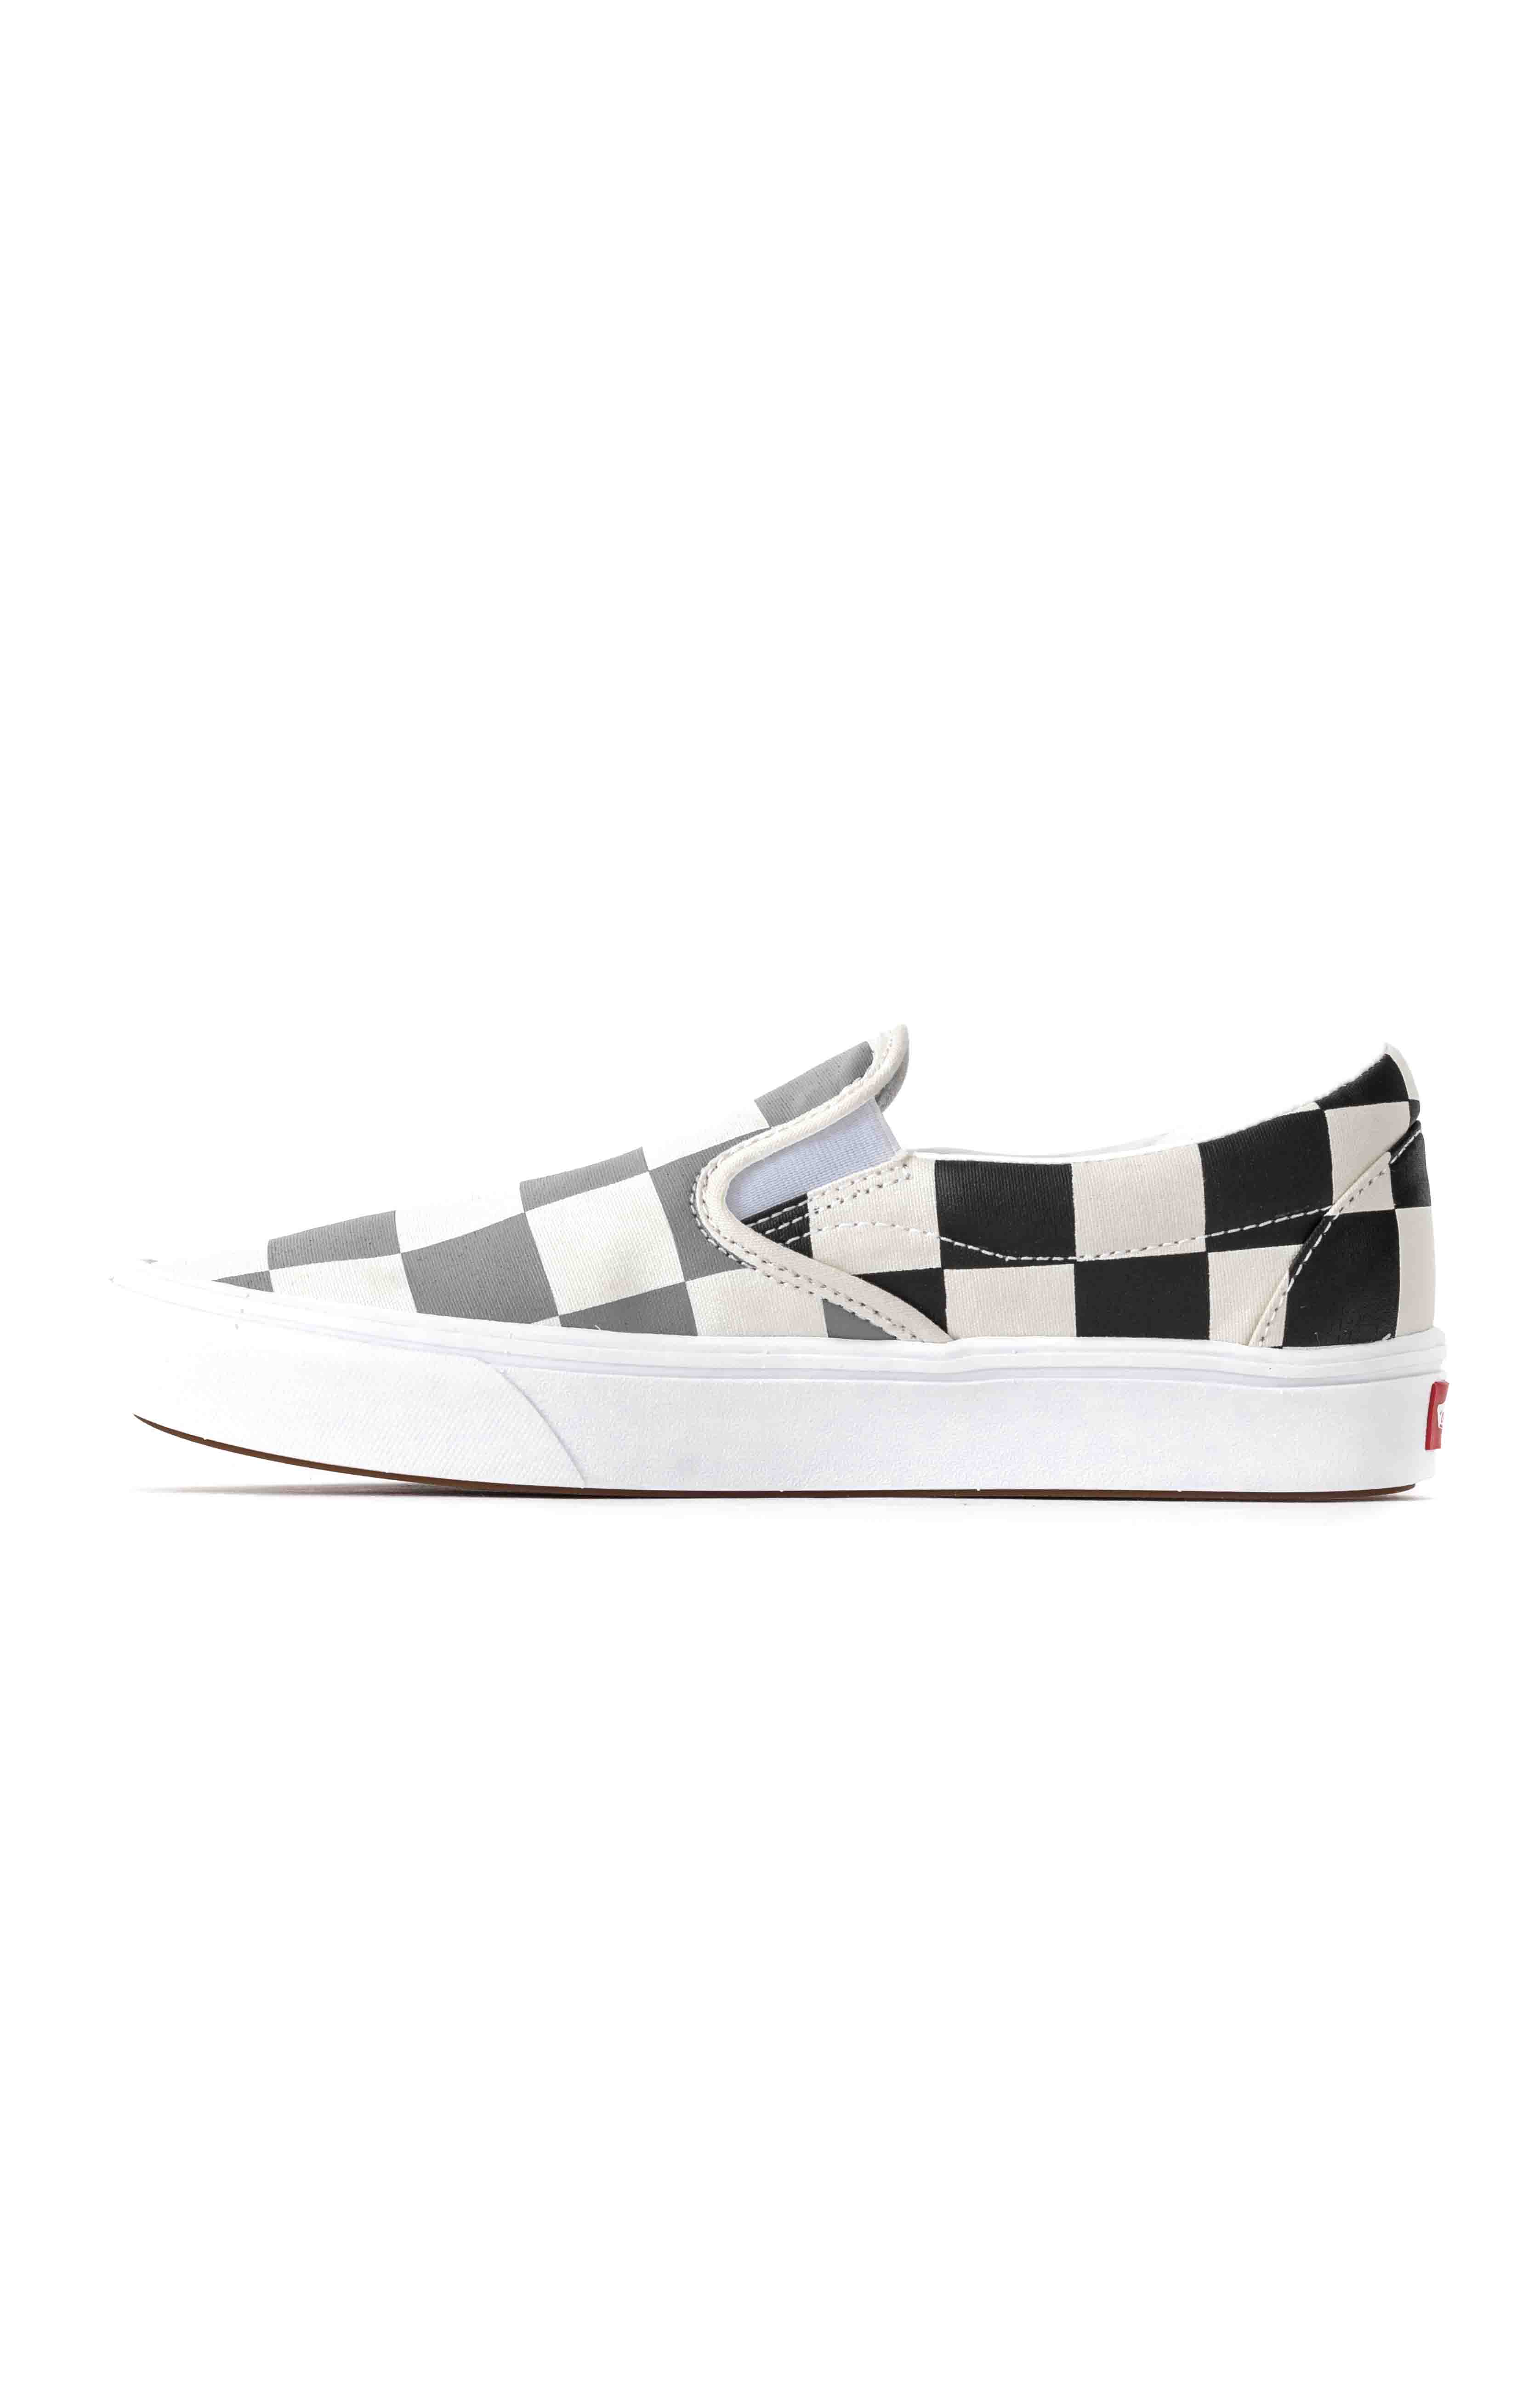 (WMDWXA) Half Big Checker ComfyCush Slip-On Shoe - Black/Grey 5